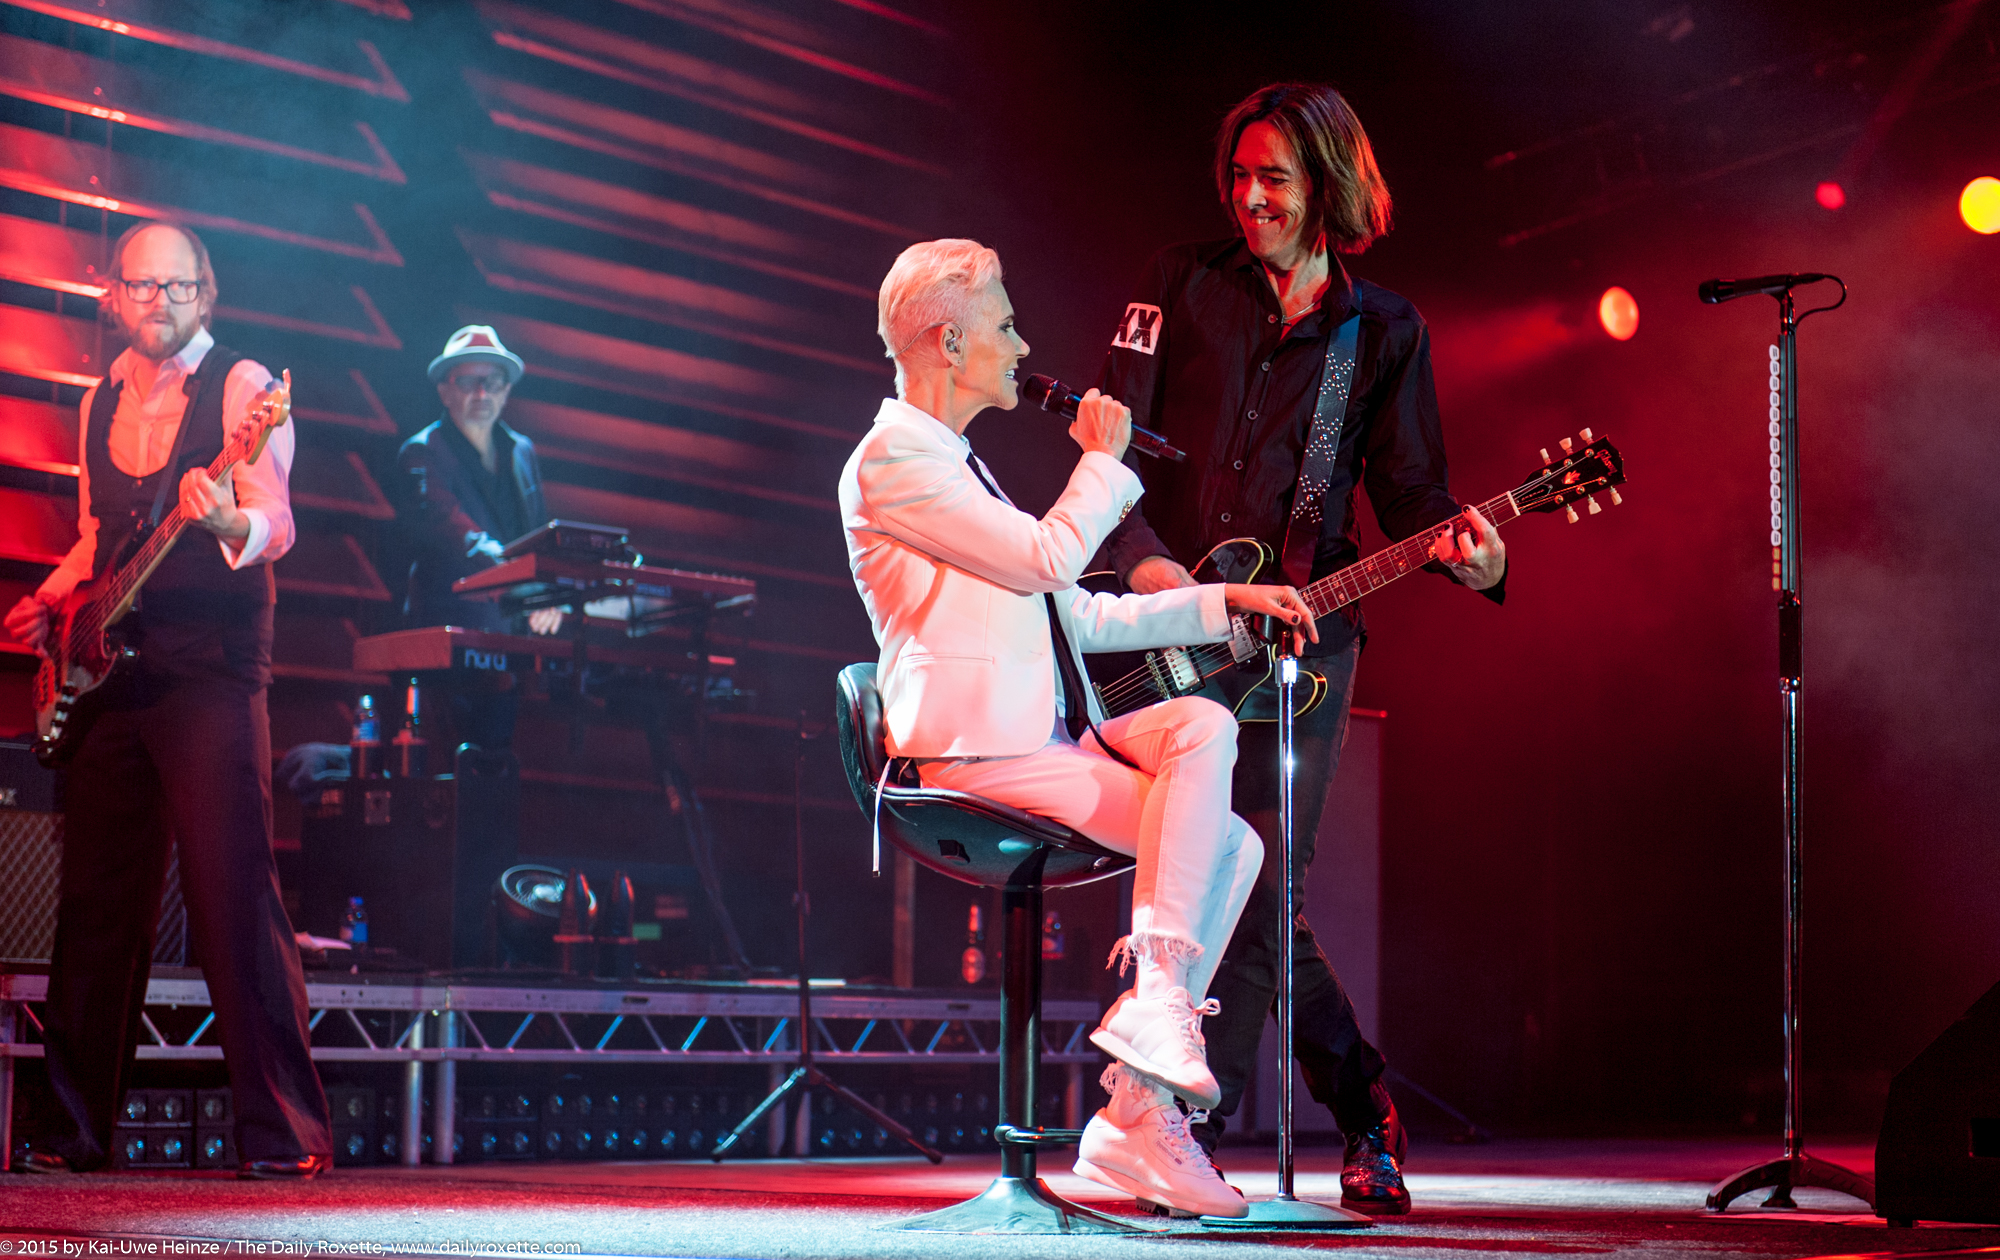 Roxette in Berlin 2015, photo by Kai-Uwe Heinze for The Daily Roxette